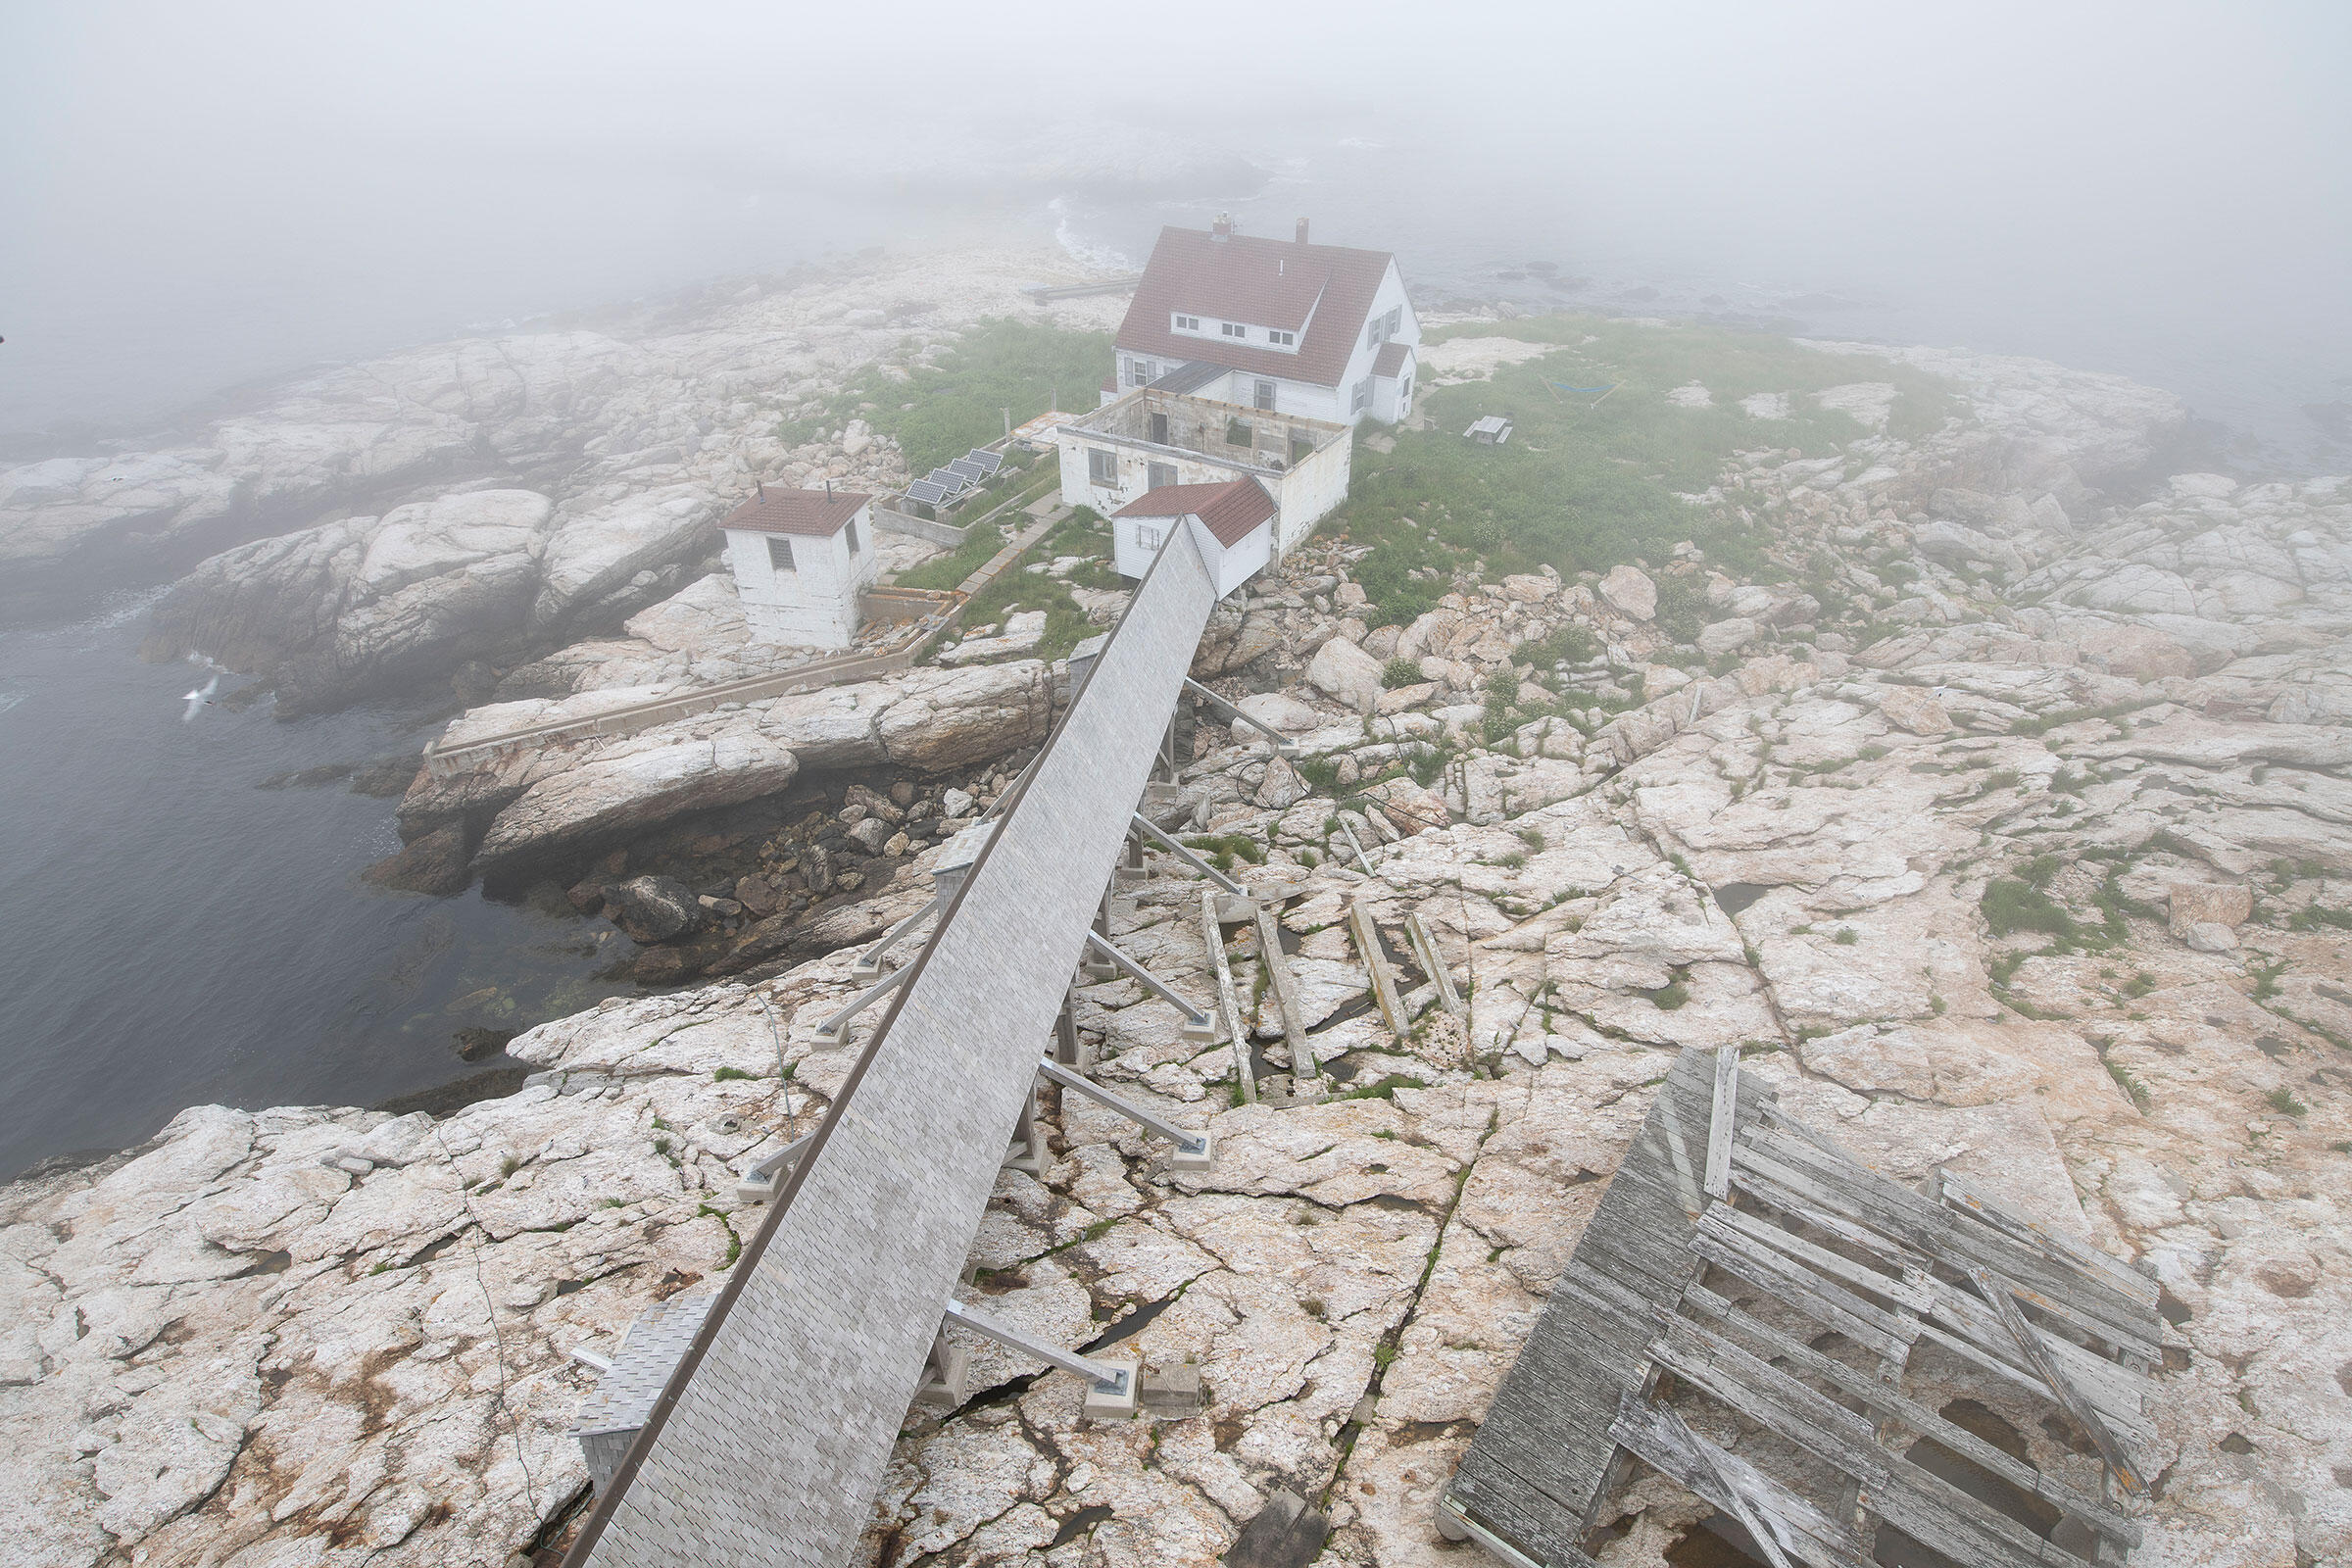 Lighthouse keeper's hut and covered walkway leading to the lighthouse. Chris Linder